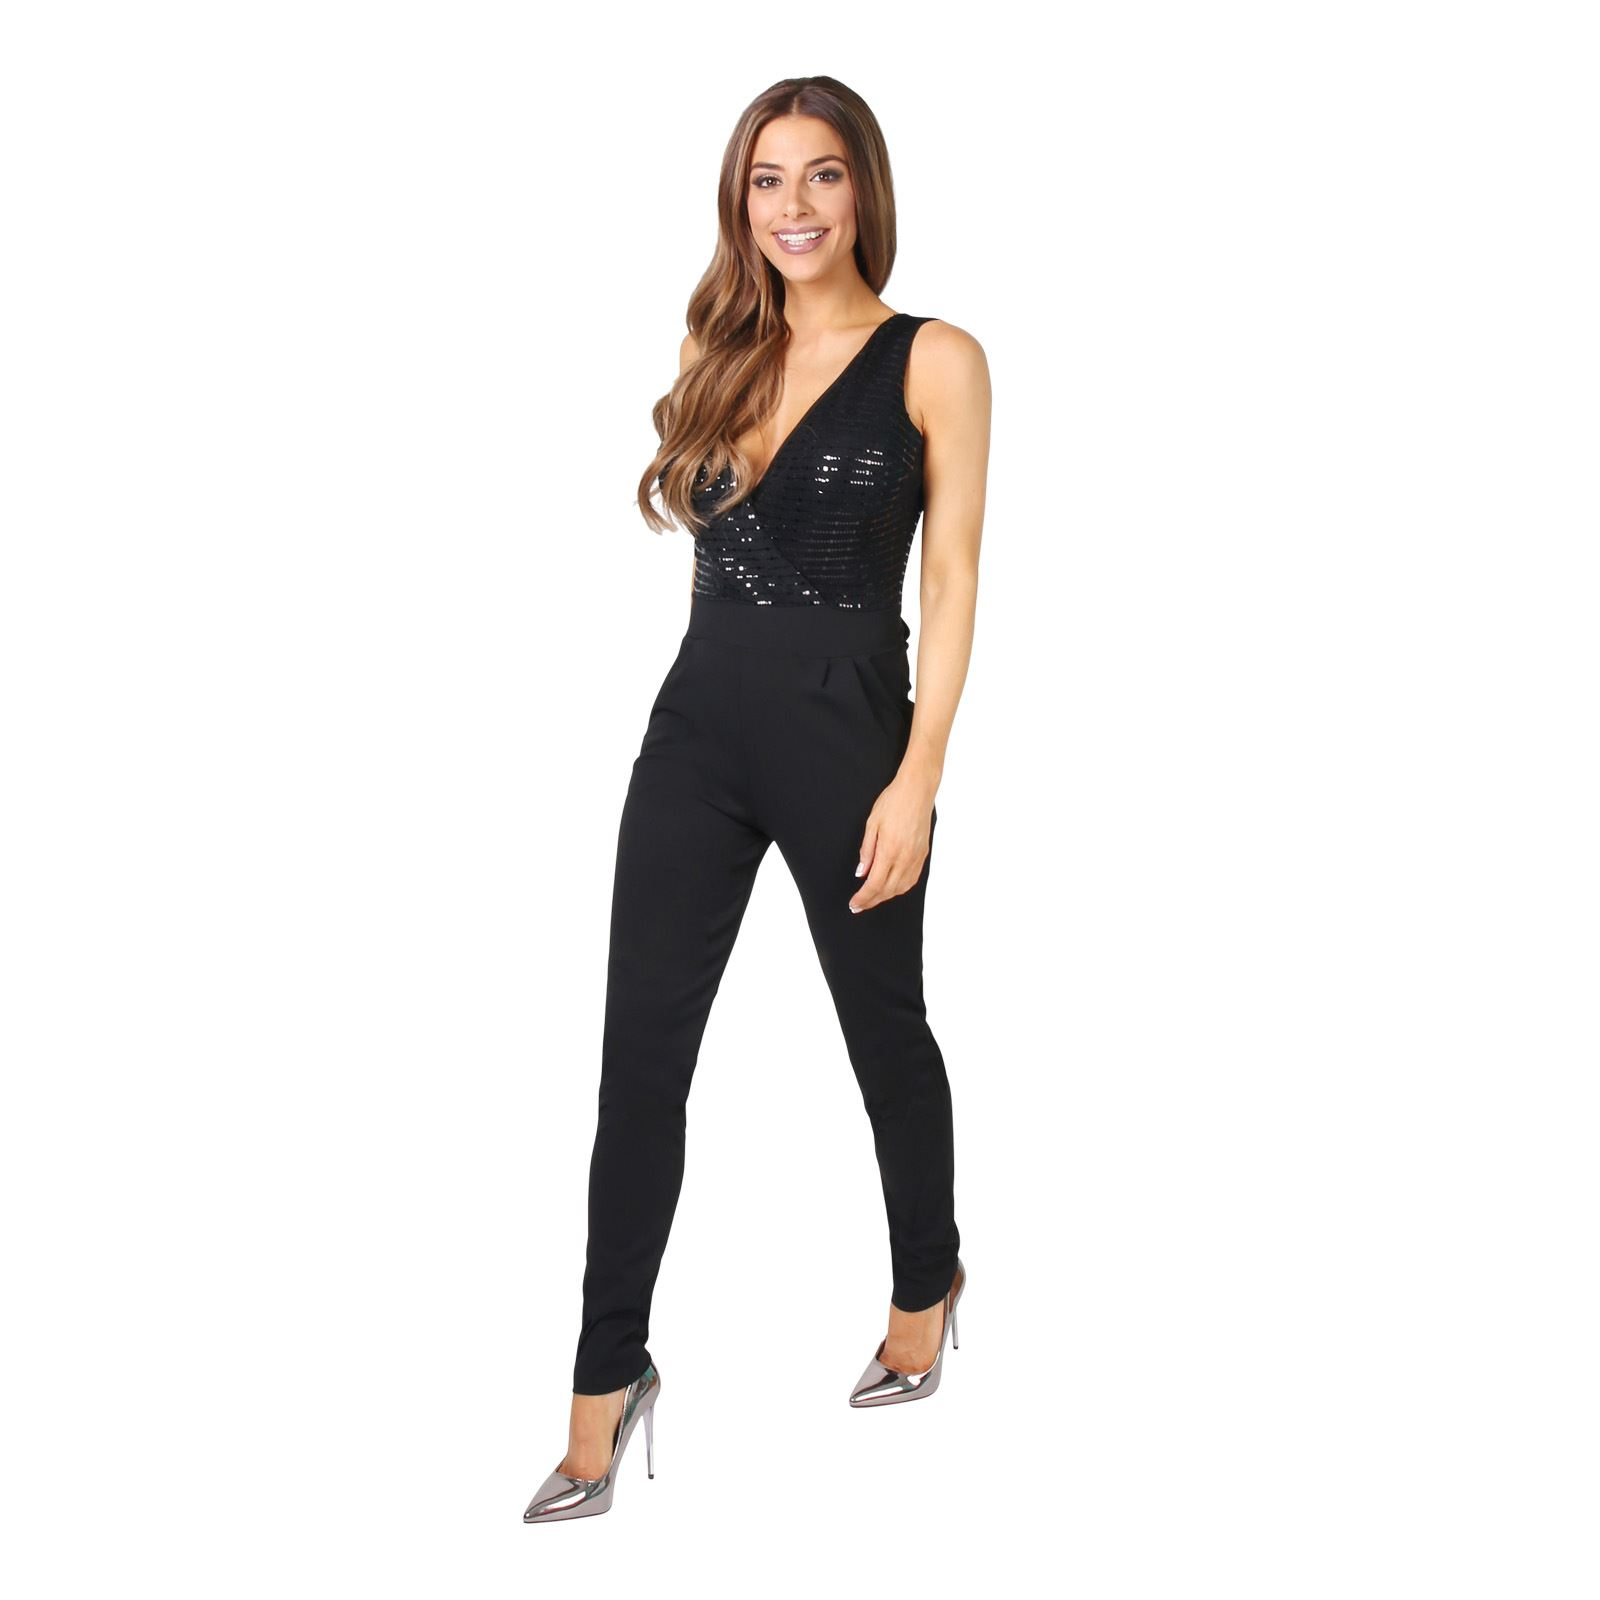 Womens Party Evening Jumpsuit Ladies Sleeveless Plunge Sequin Top Long Playsuit | EBay